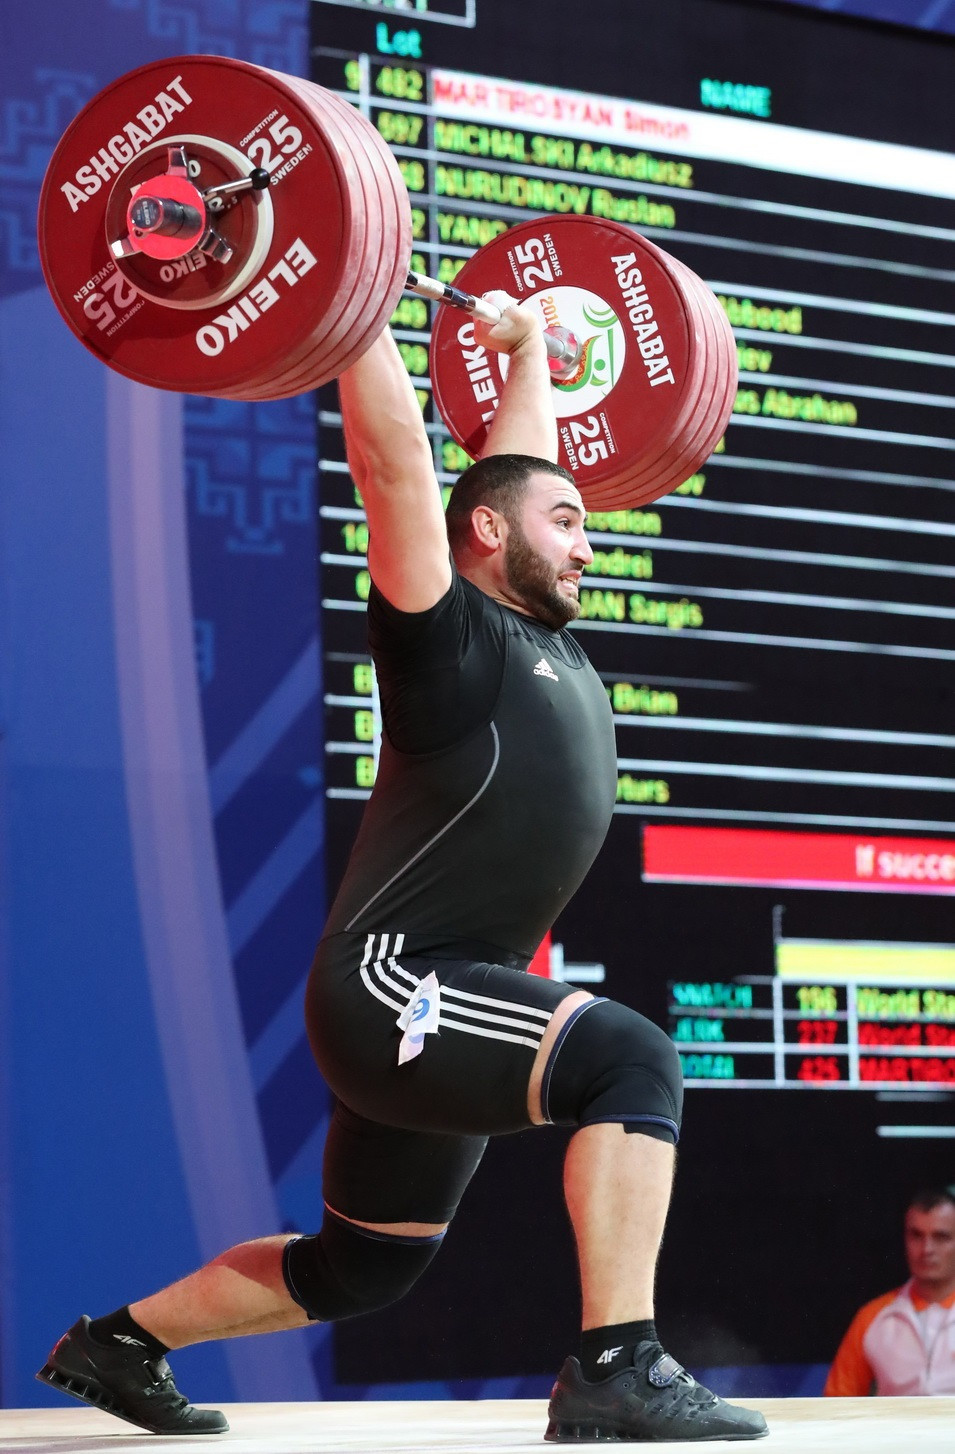 Armenia's Martirosyan claims maiden global crown with men's 109kg triumph at 2018 IWF World Championships